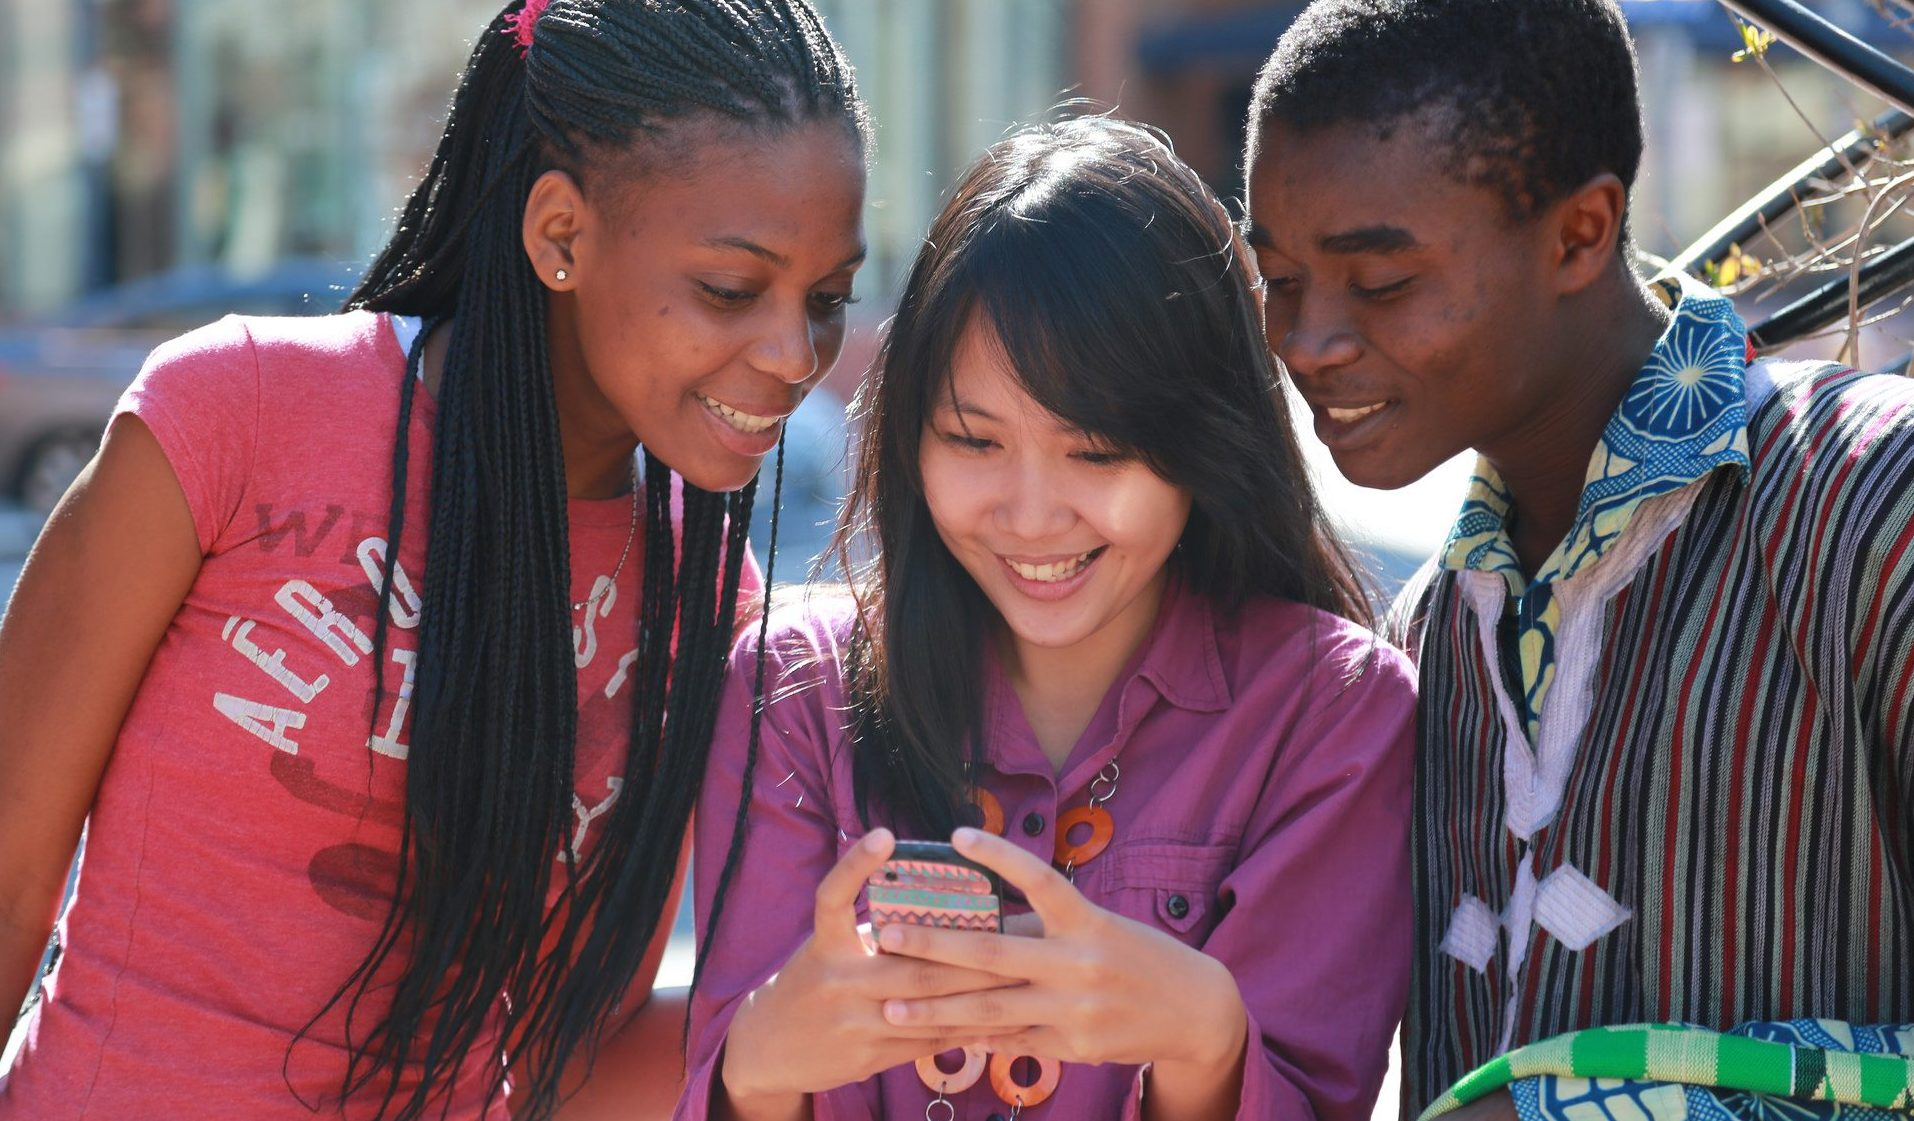 Three teenagers looking at a smartphone and smiling